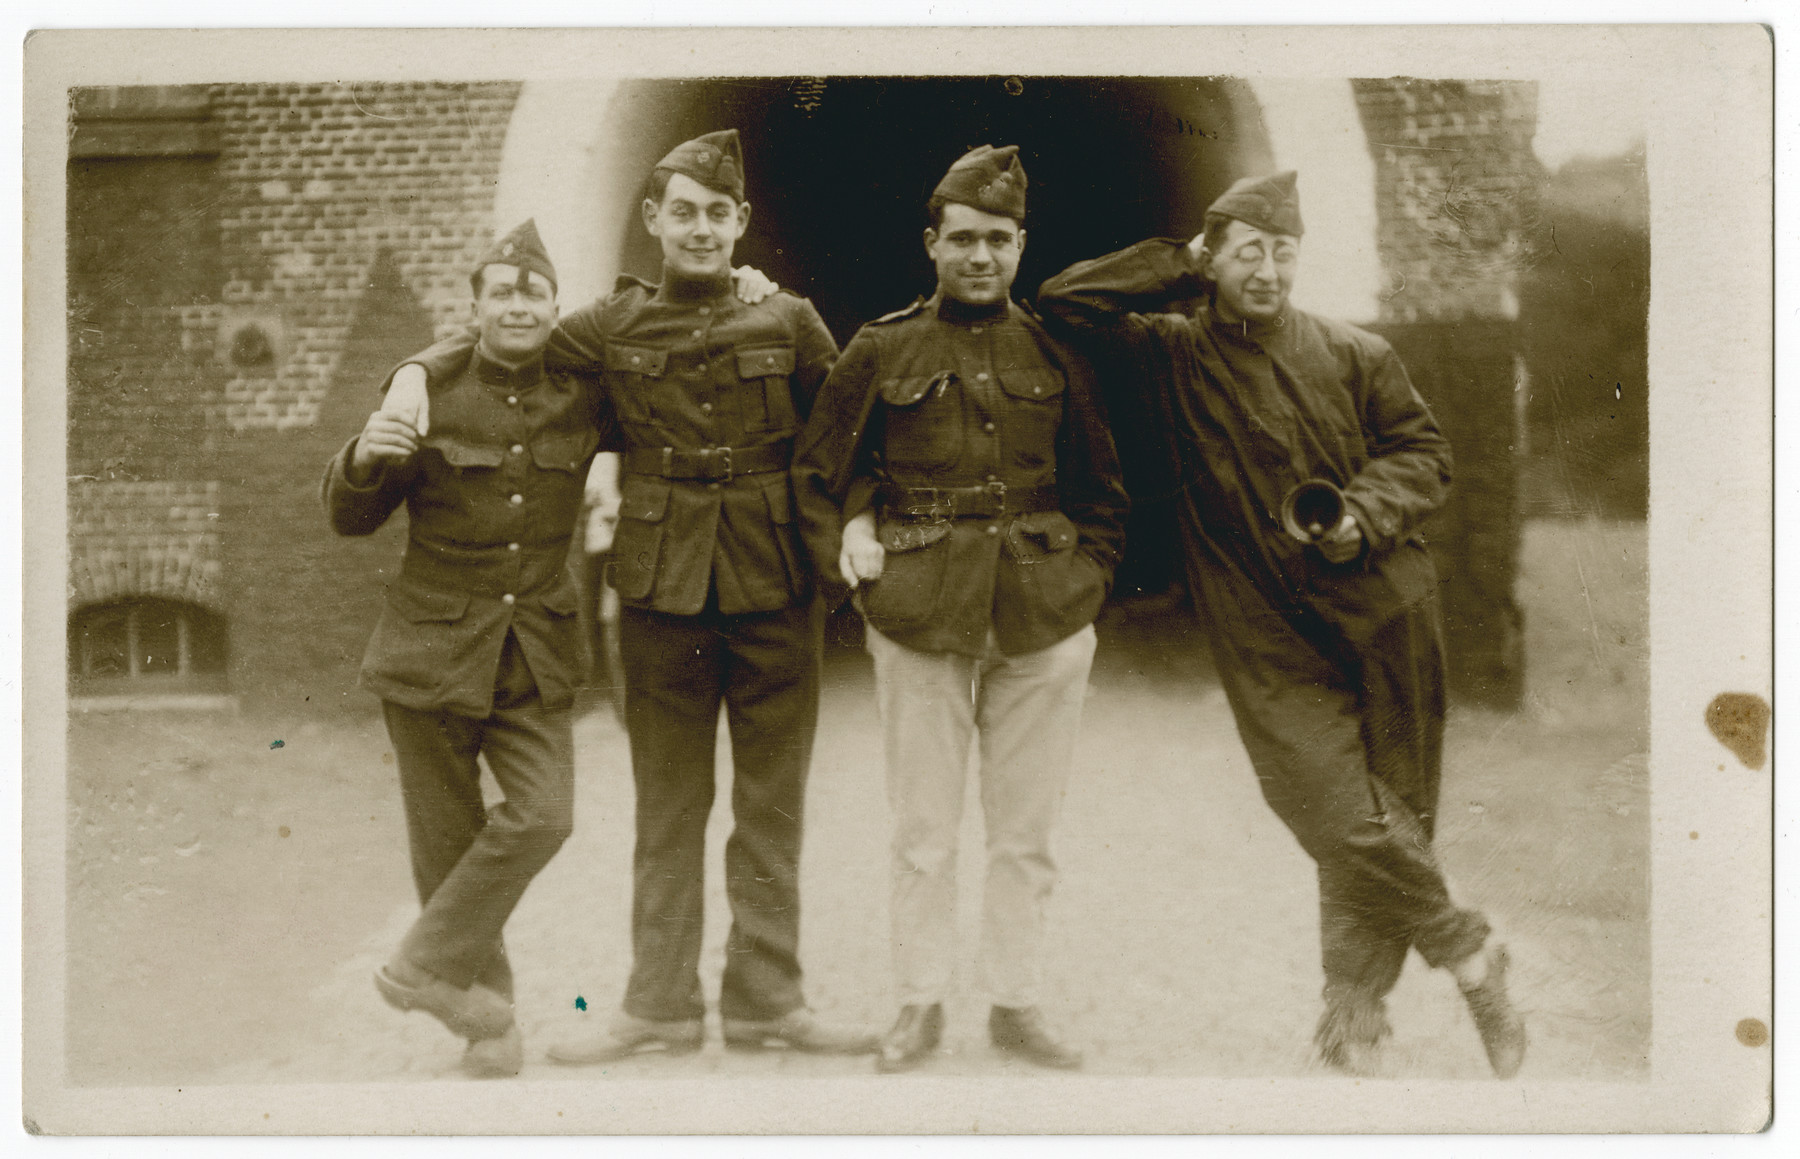 Group portrait of four POWs.  Leopold Guttman is pictured on the right.